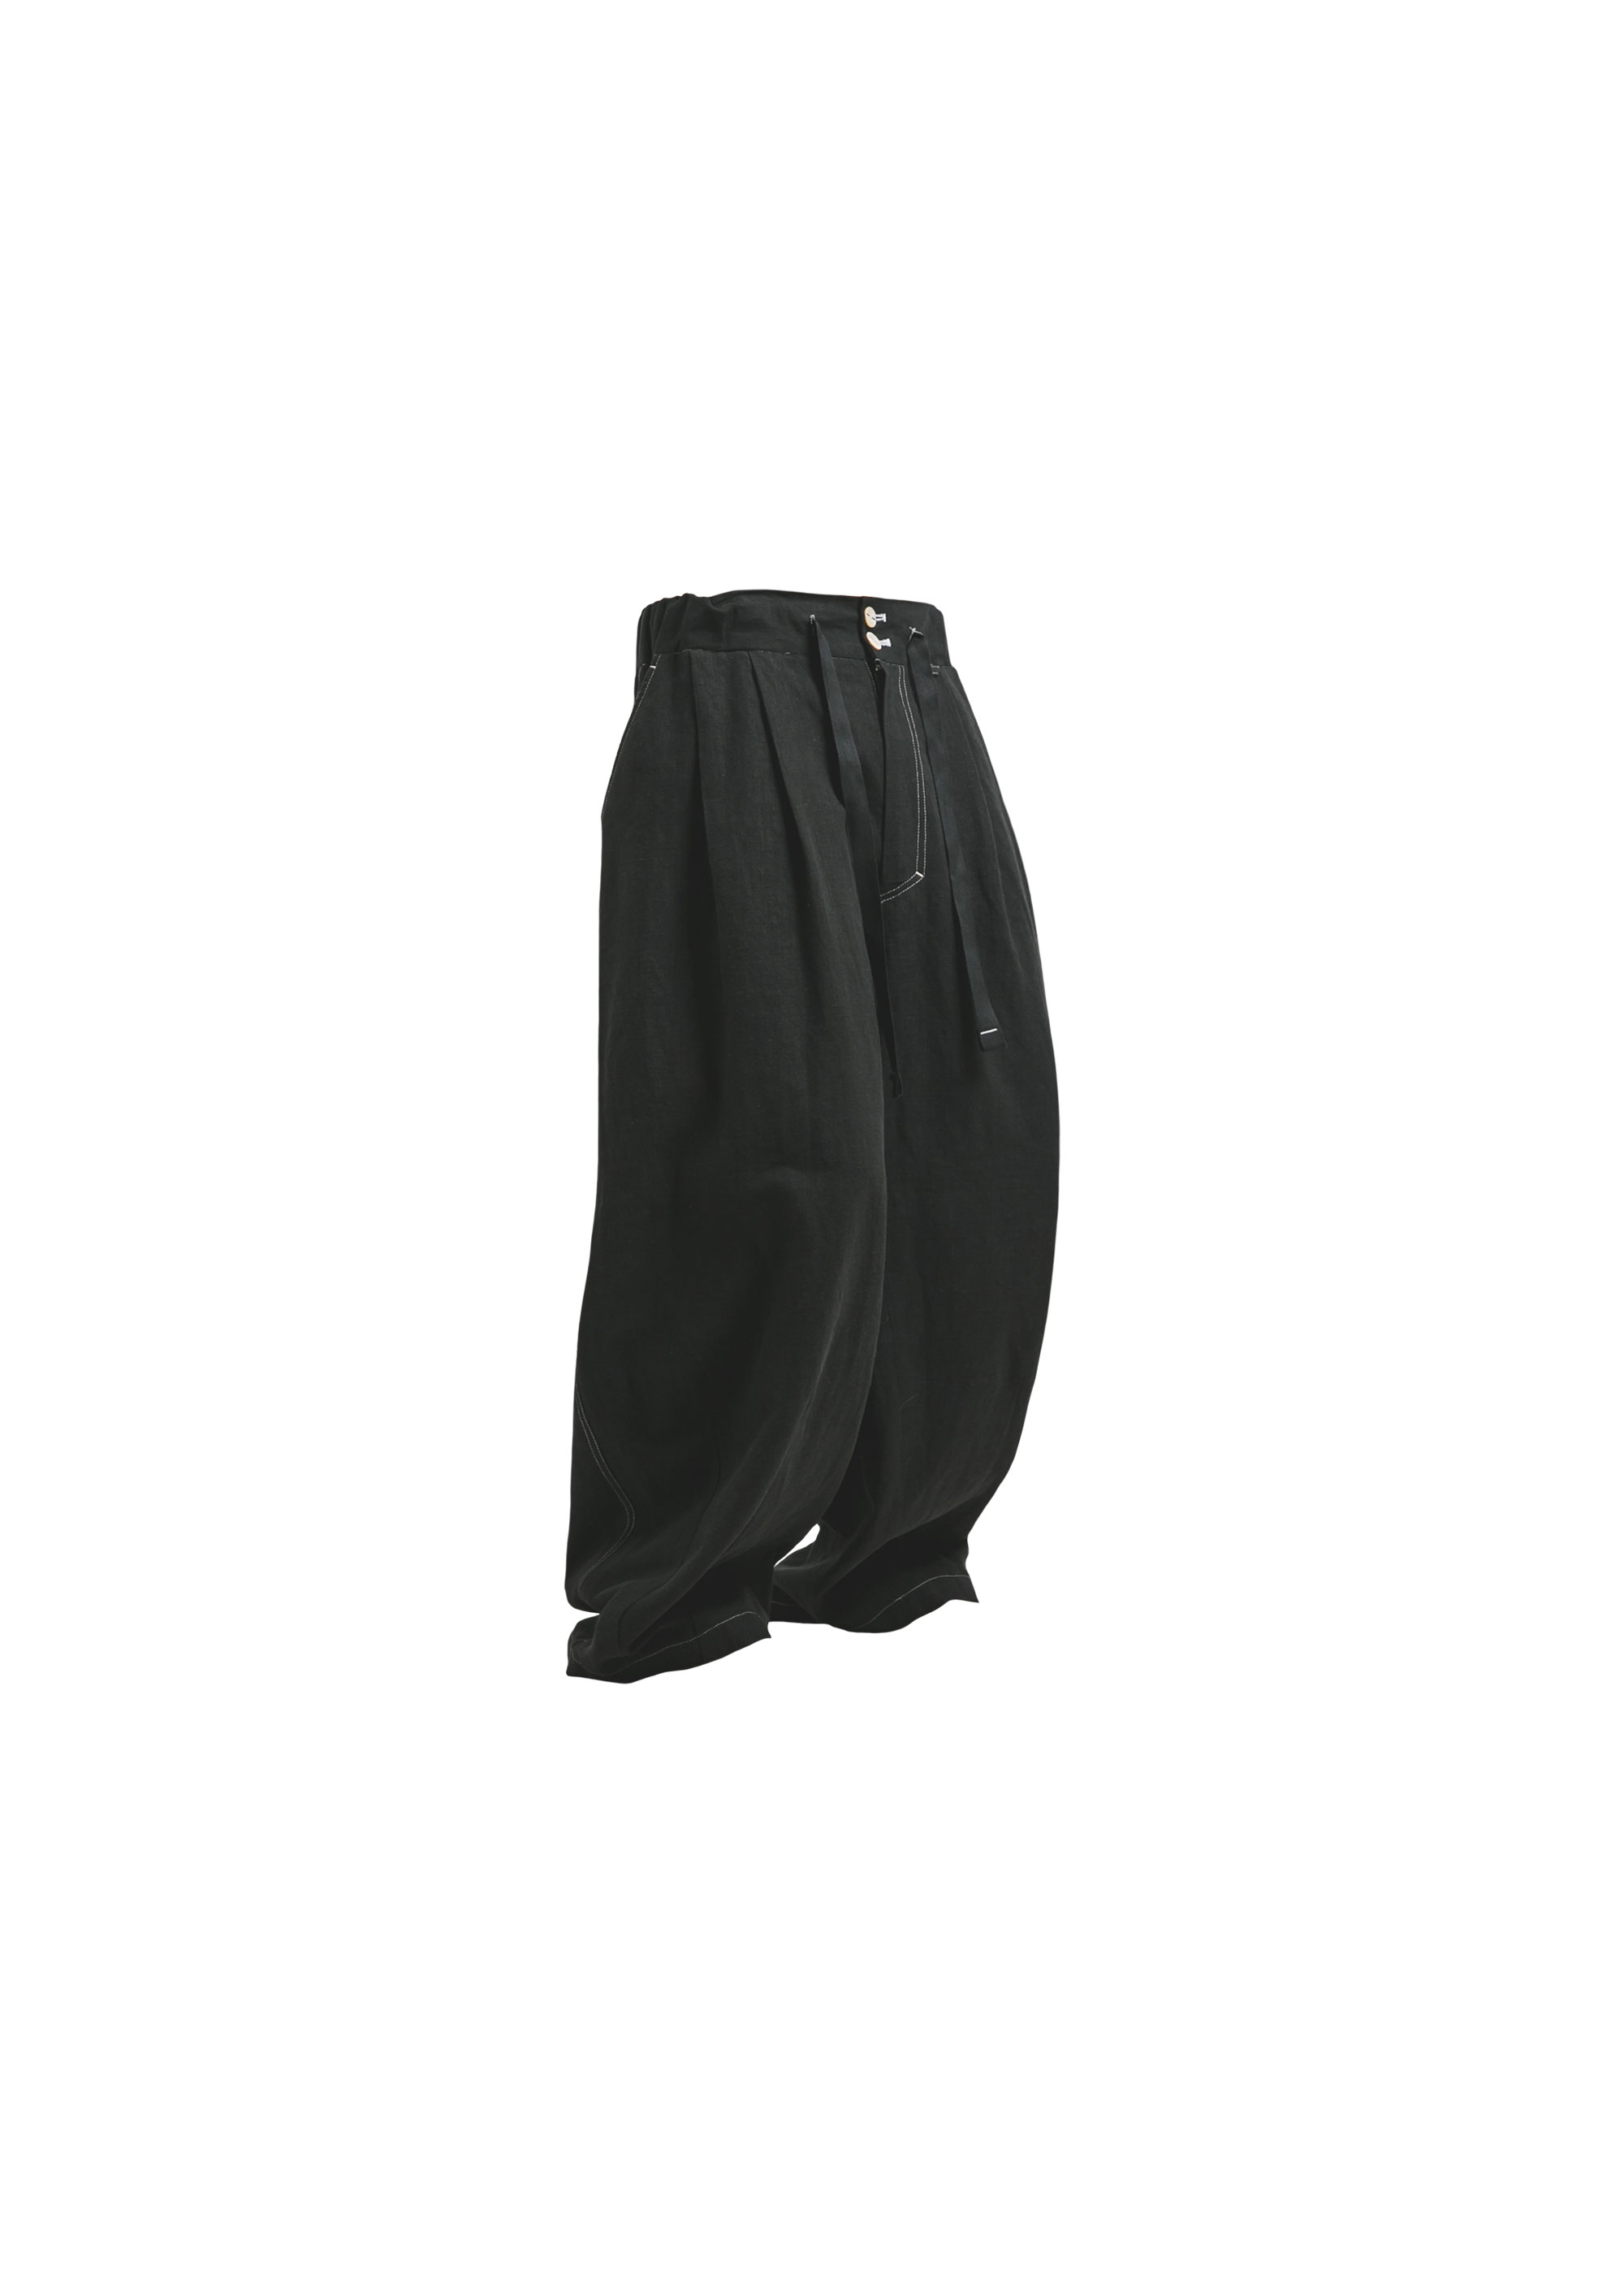 [AG] Linen Balloon pants - Black